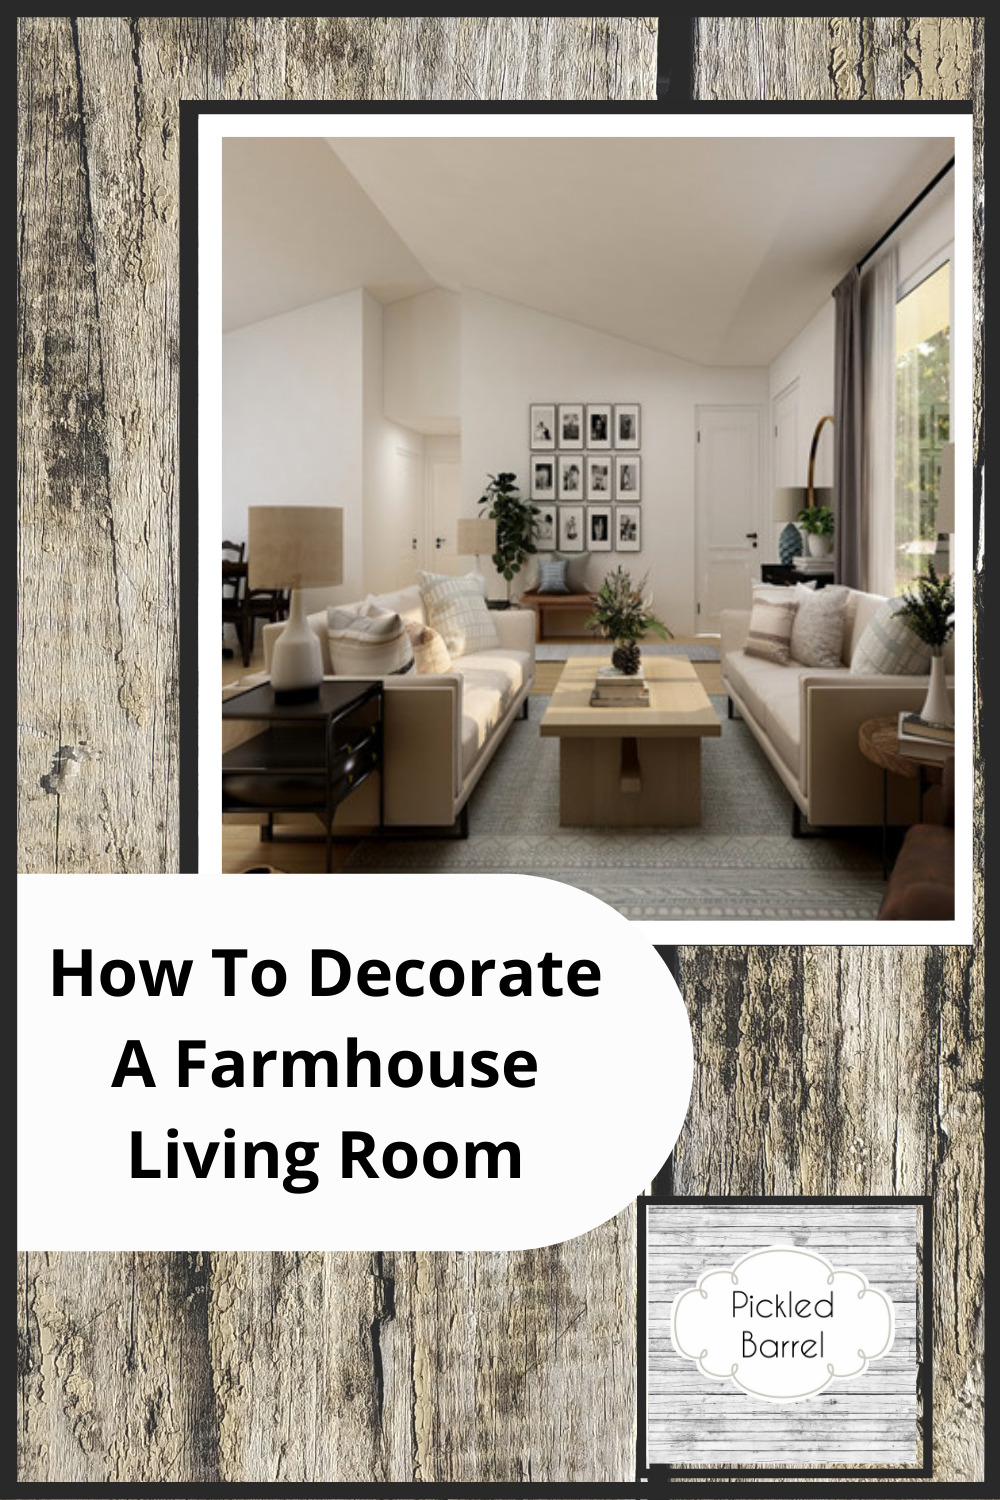 Pickledbarrel.com has perfectly quaint and rustic ideas for a farmhouse home. Find fresh, new decor ideas to spruce up your space. These ideas are absolutely perfect for a farmhouse style living room!